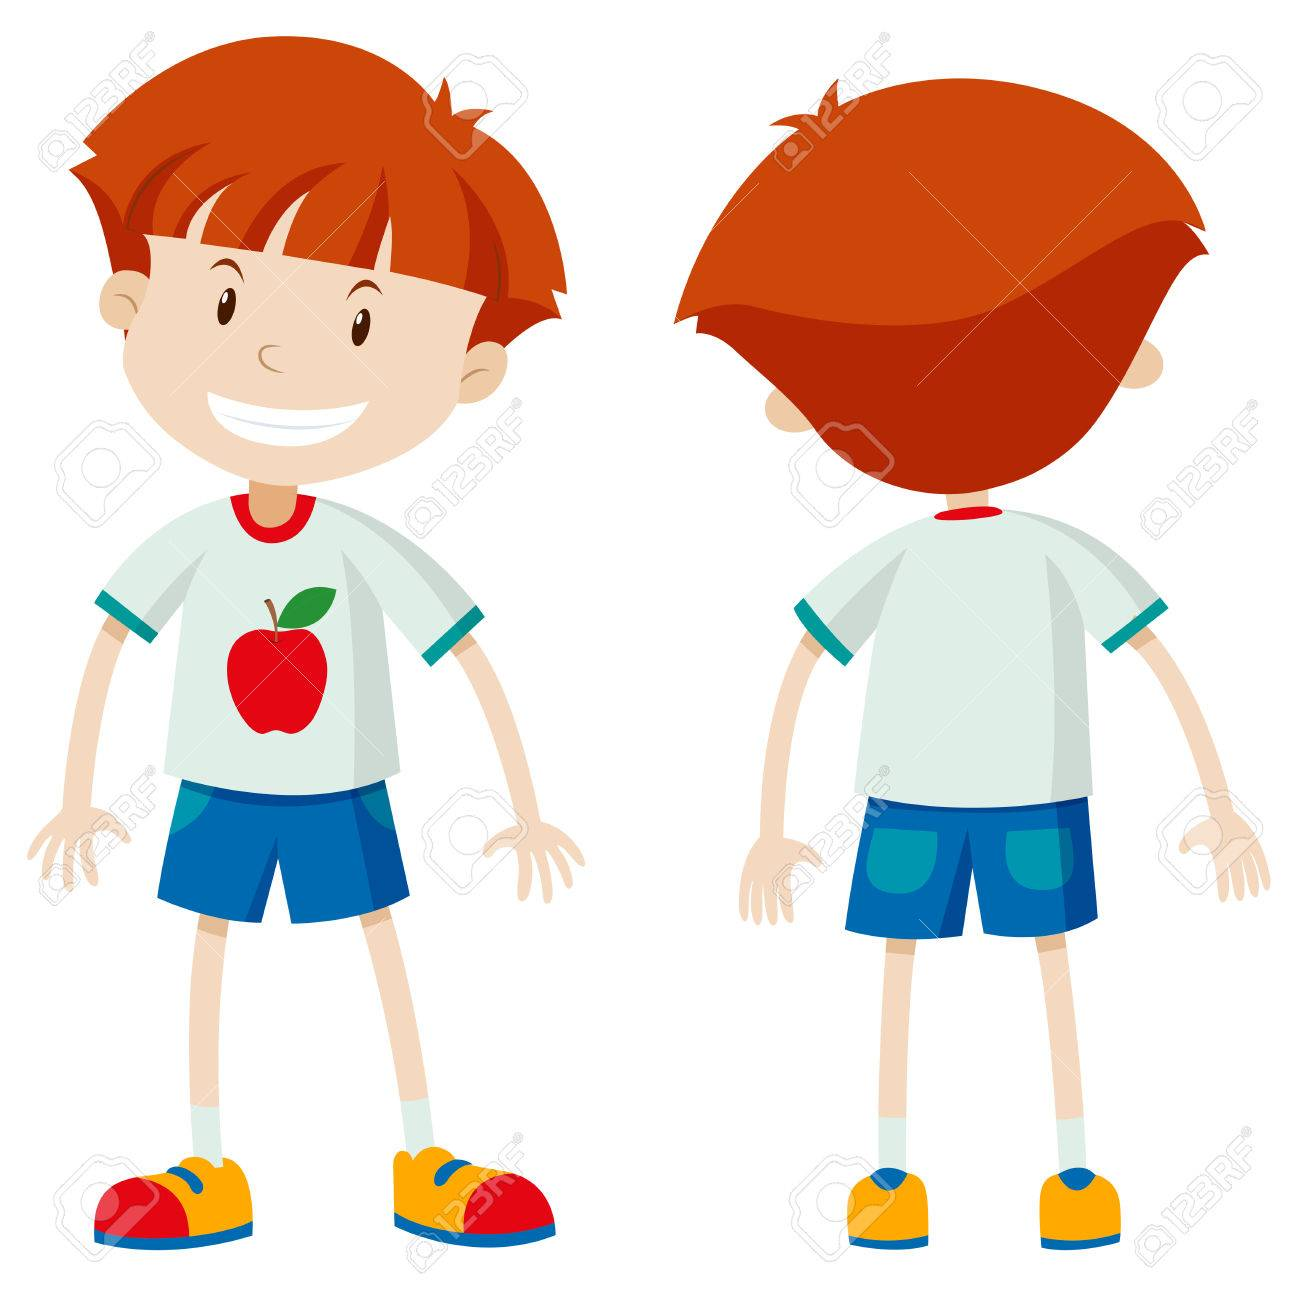 front and back view of a boy illustration royalty free cliparts